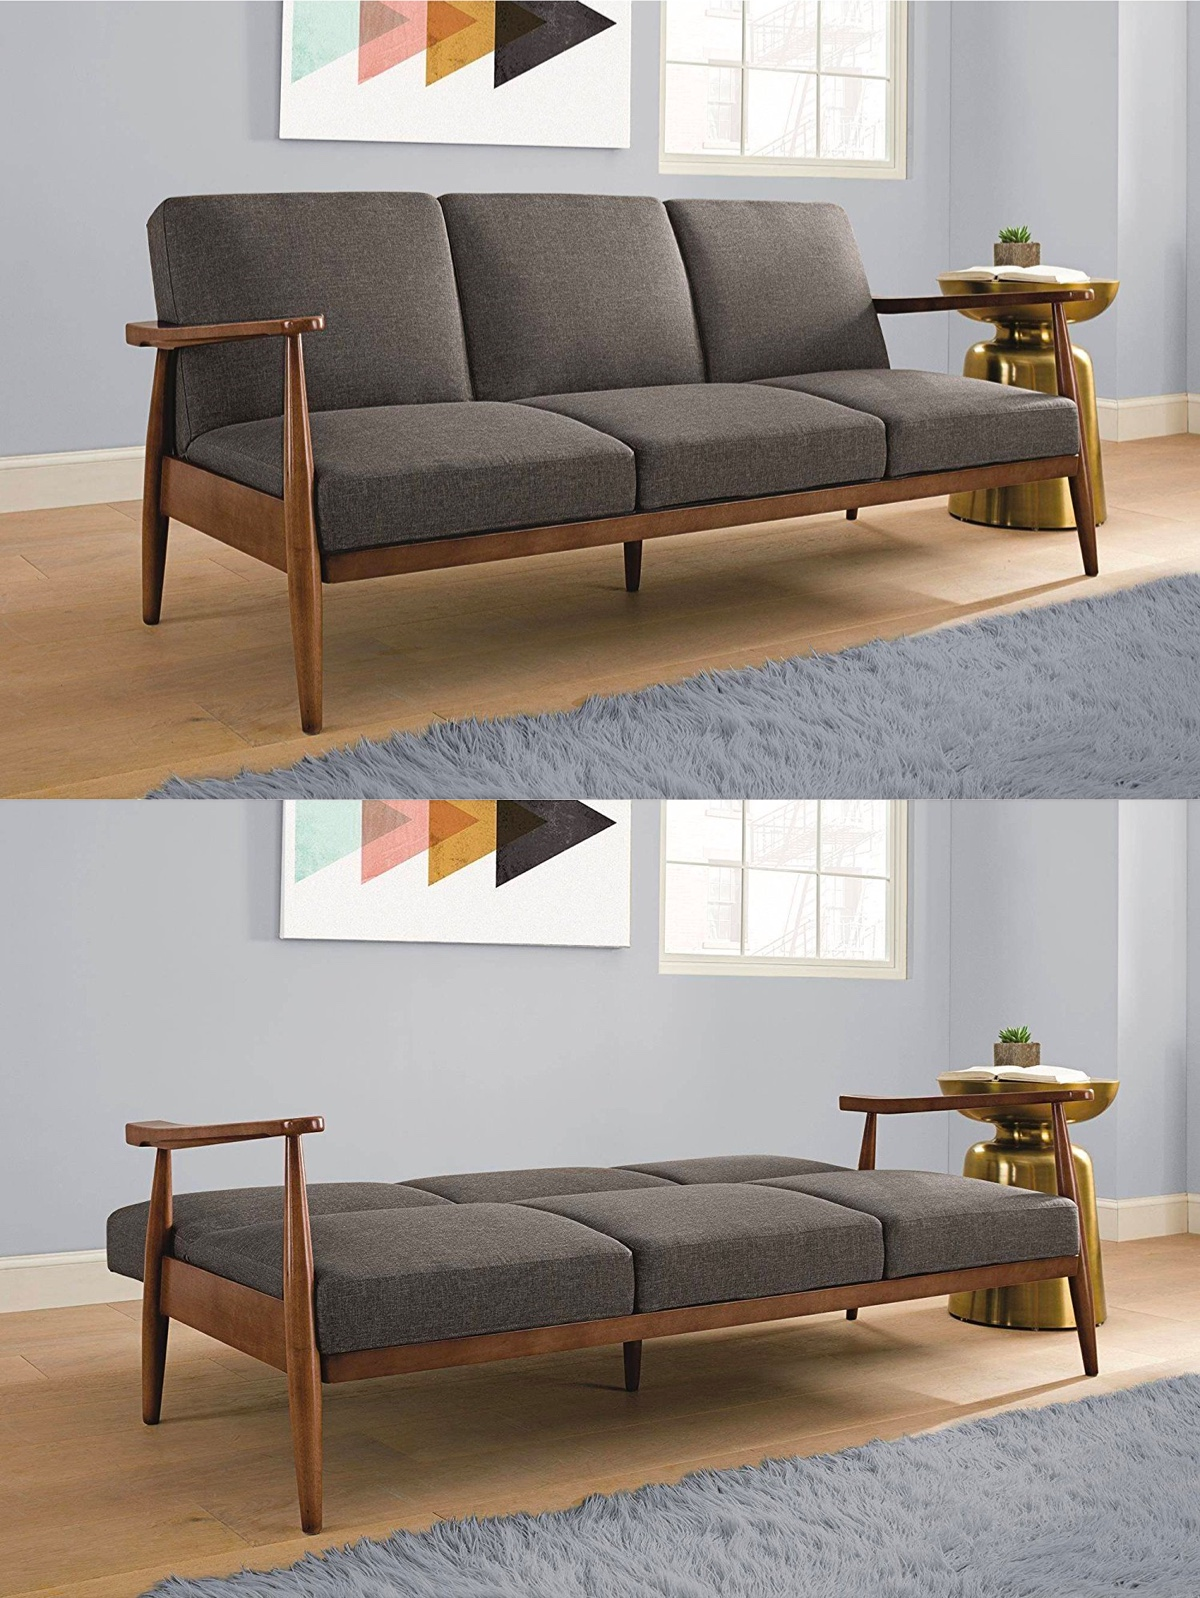 30 Mid Century Modern Sofas That Make Your Lounge Look The Era Rh Home  Designing Com